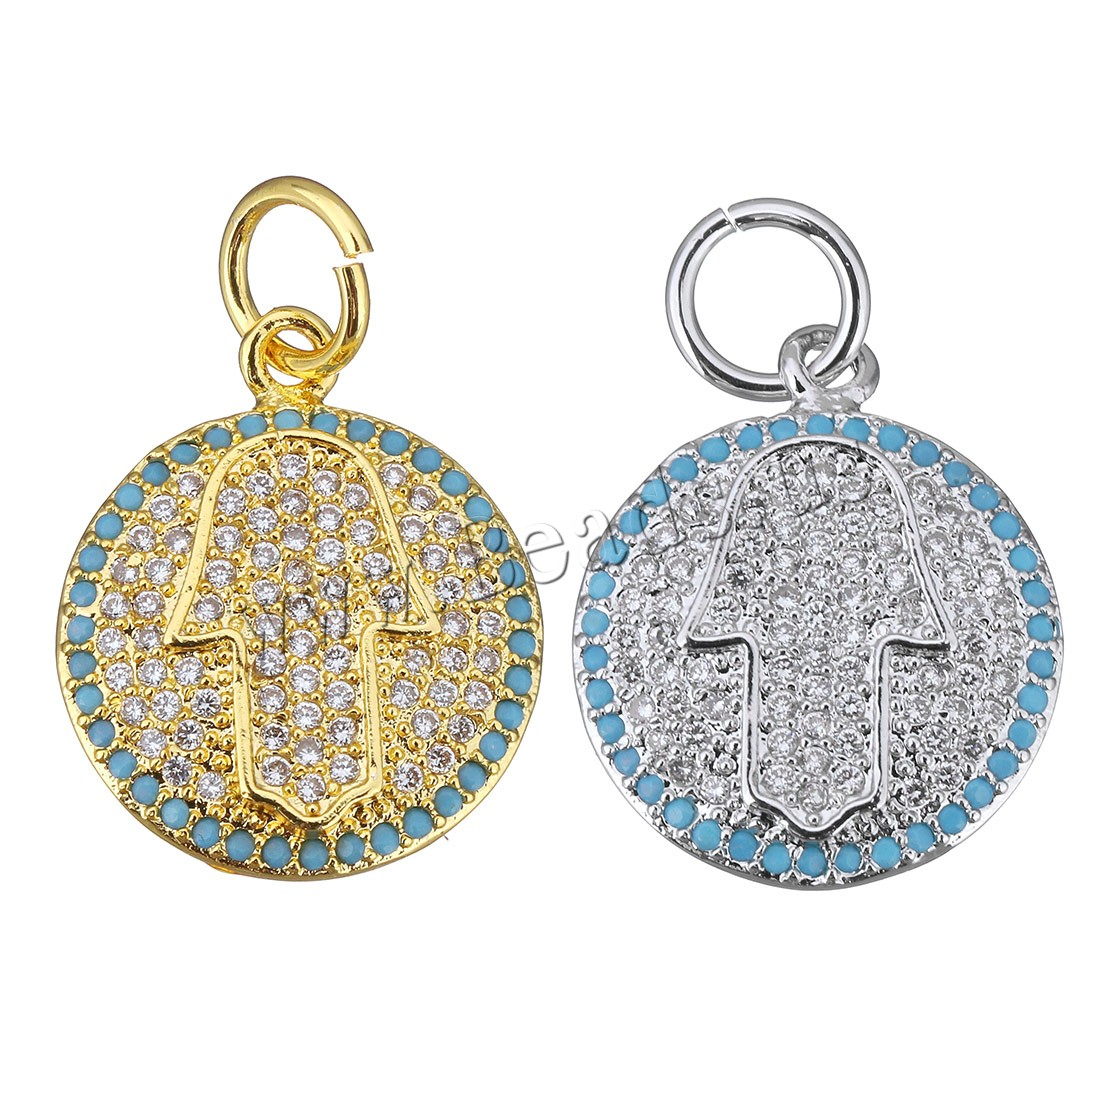 Buy Cubic Zirconia Micro Pave Brass Pendant Hamsa plated micro pave cubic zirconia colors choice 16x20x3mm Hole:Approx 5mm 1 Sold Lot